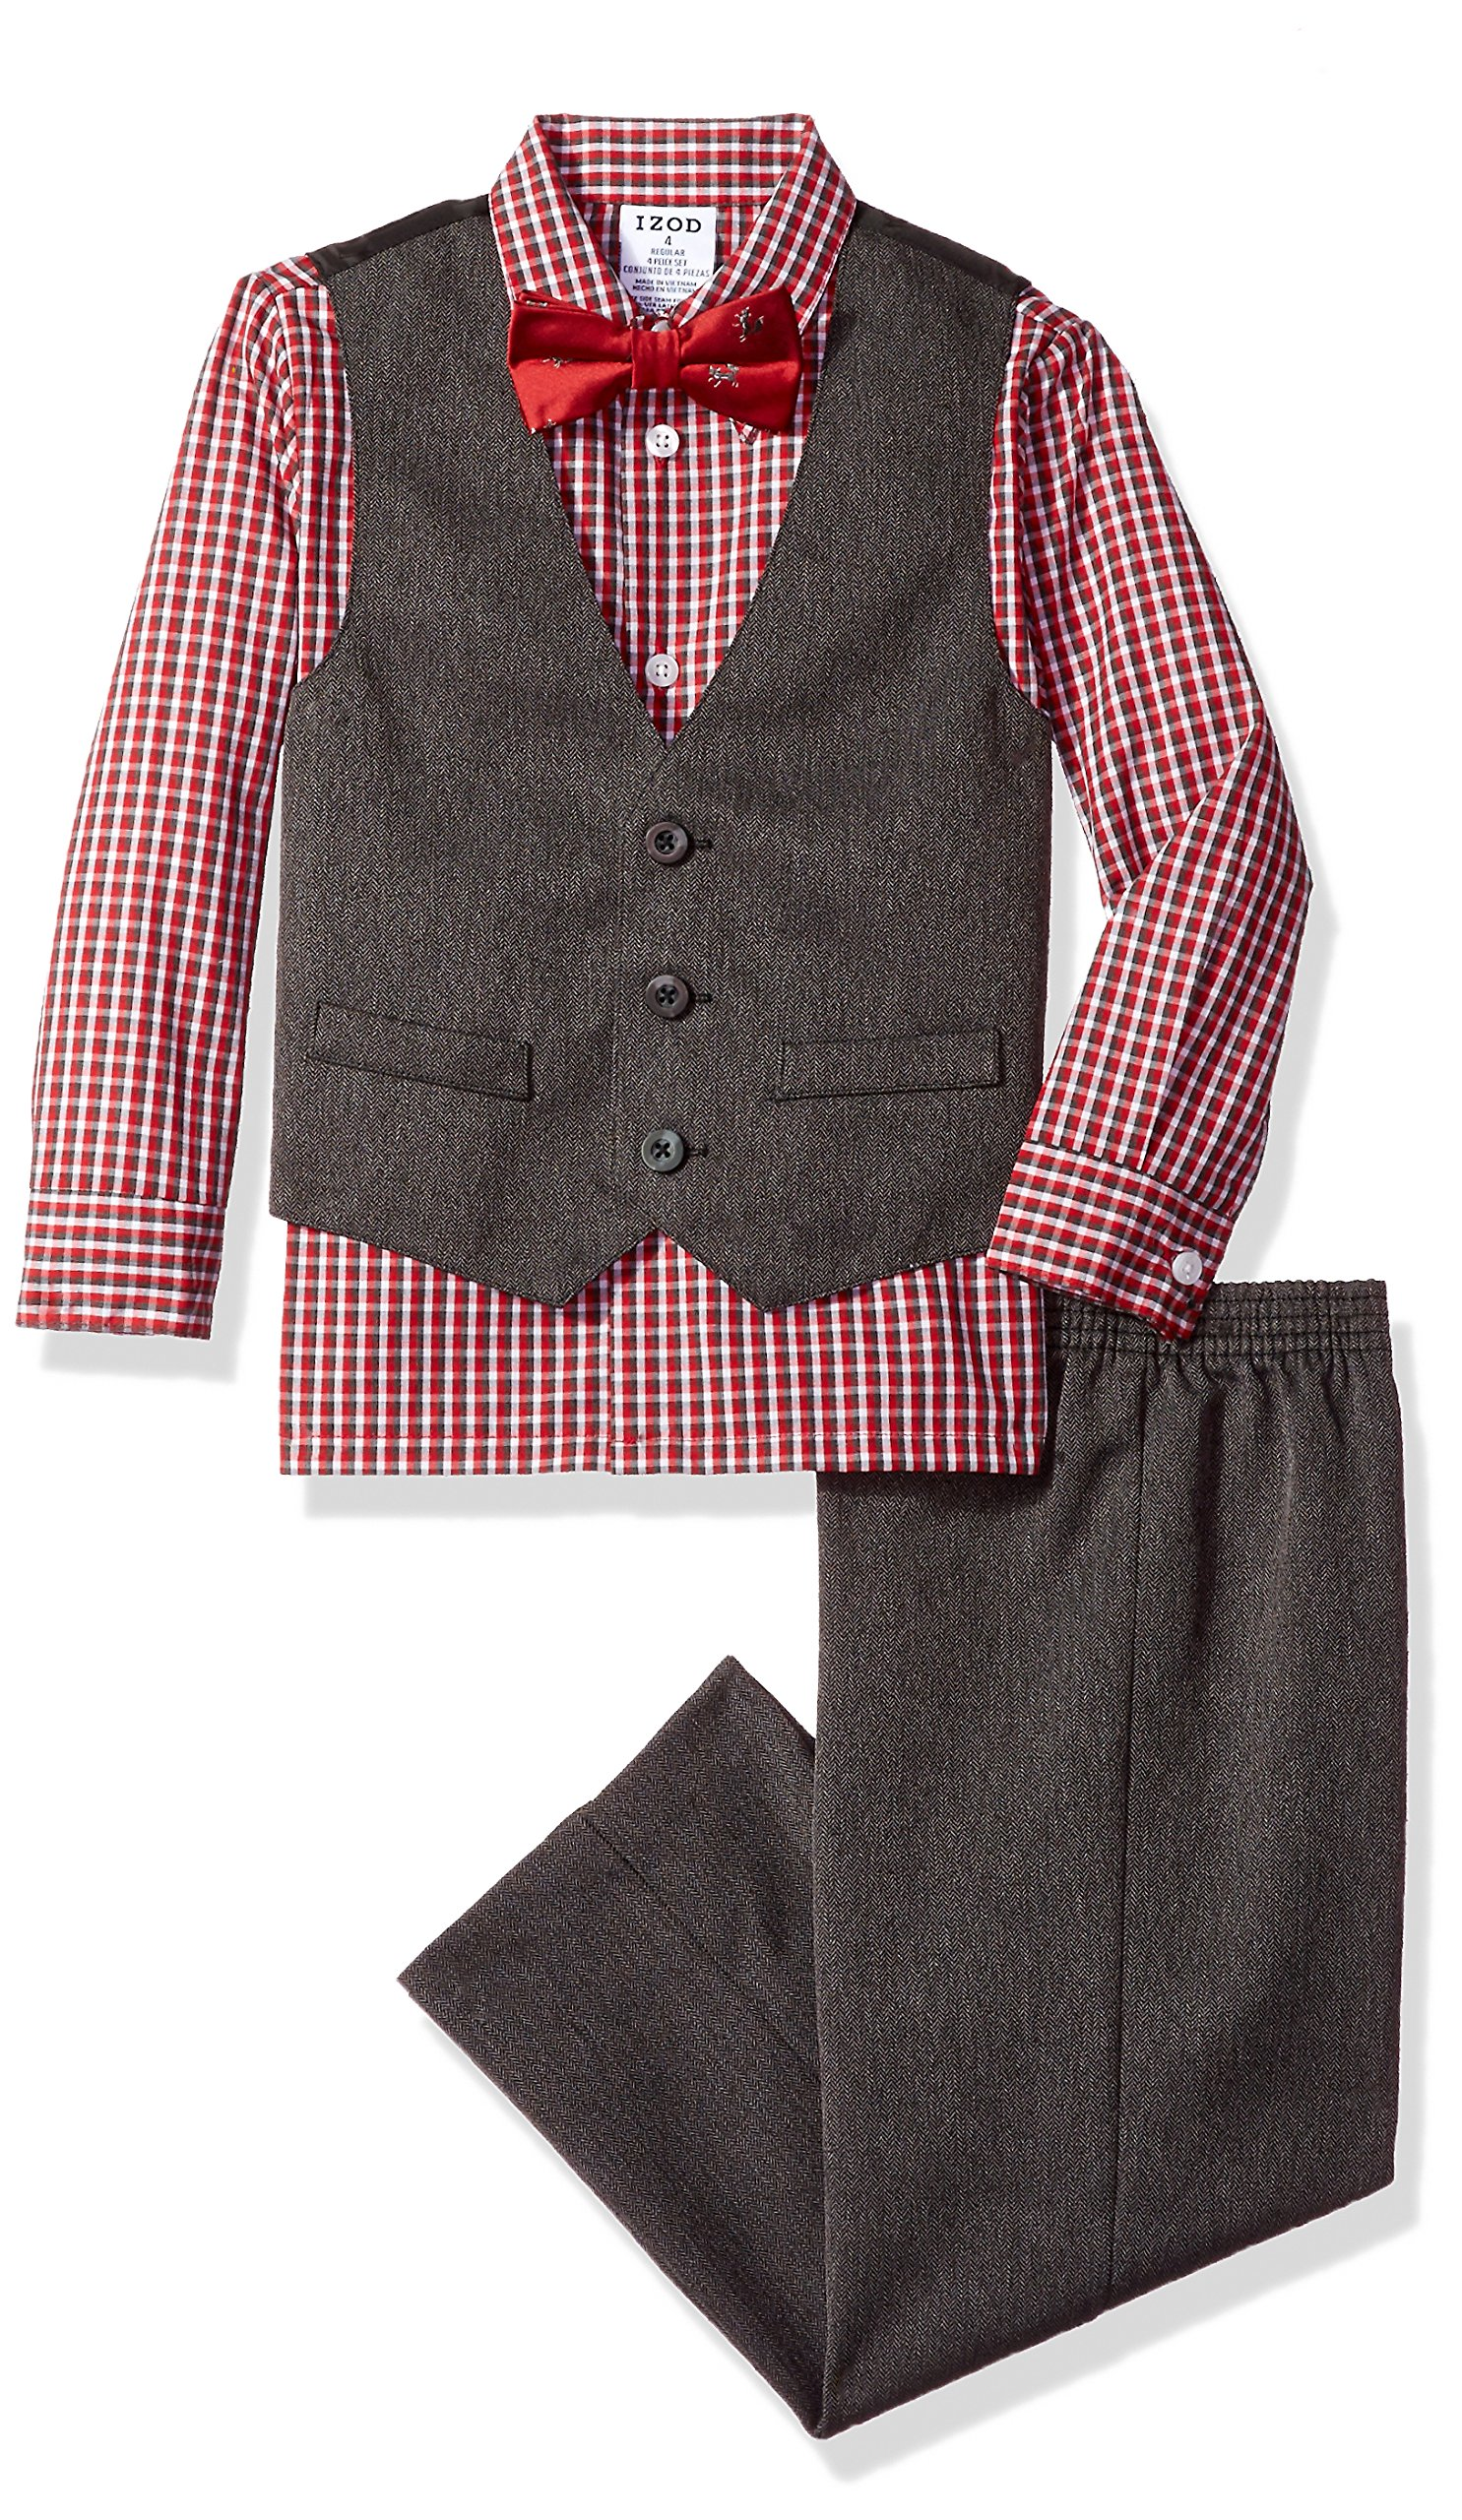 IZOD Toddler Boys' Four Piece Formal Vest Set, Cherry, 4T